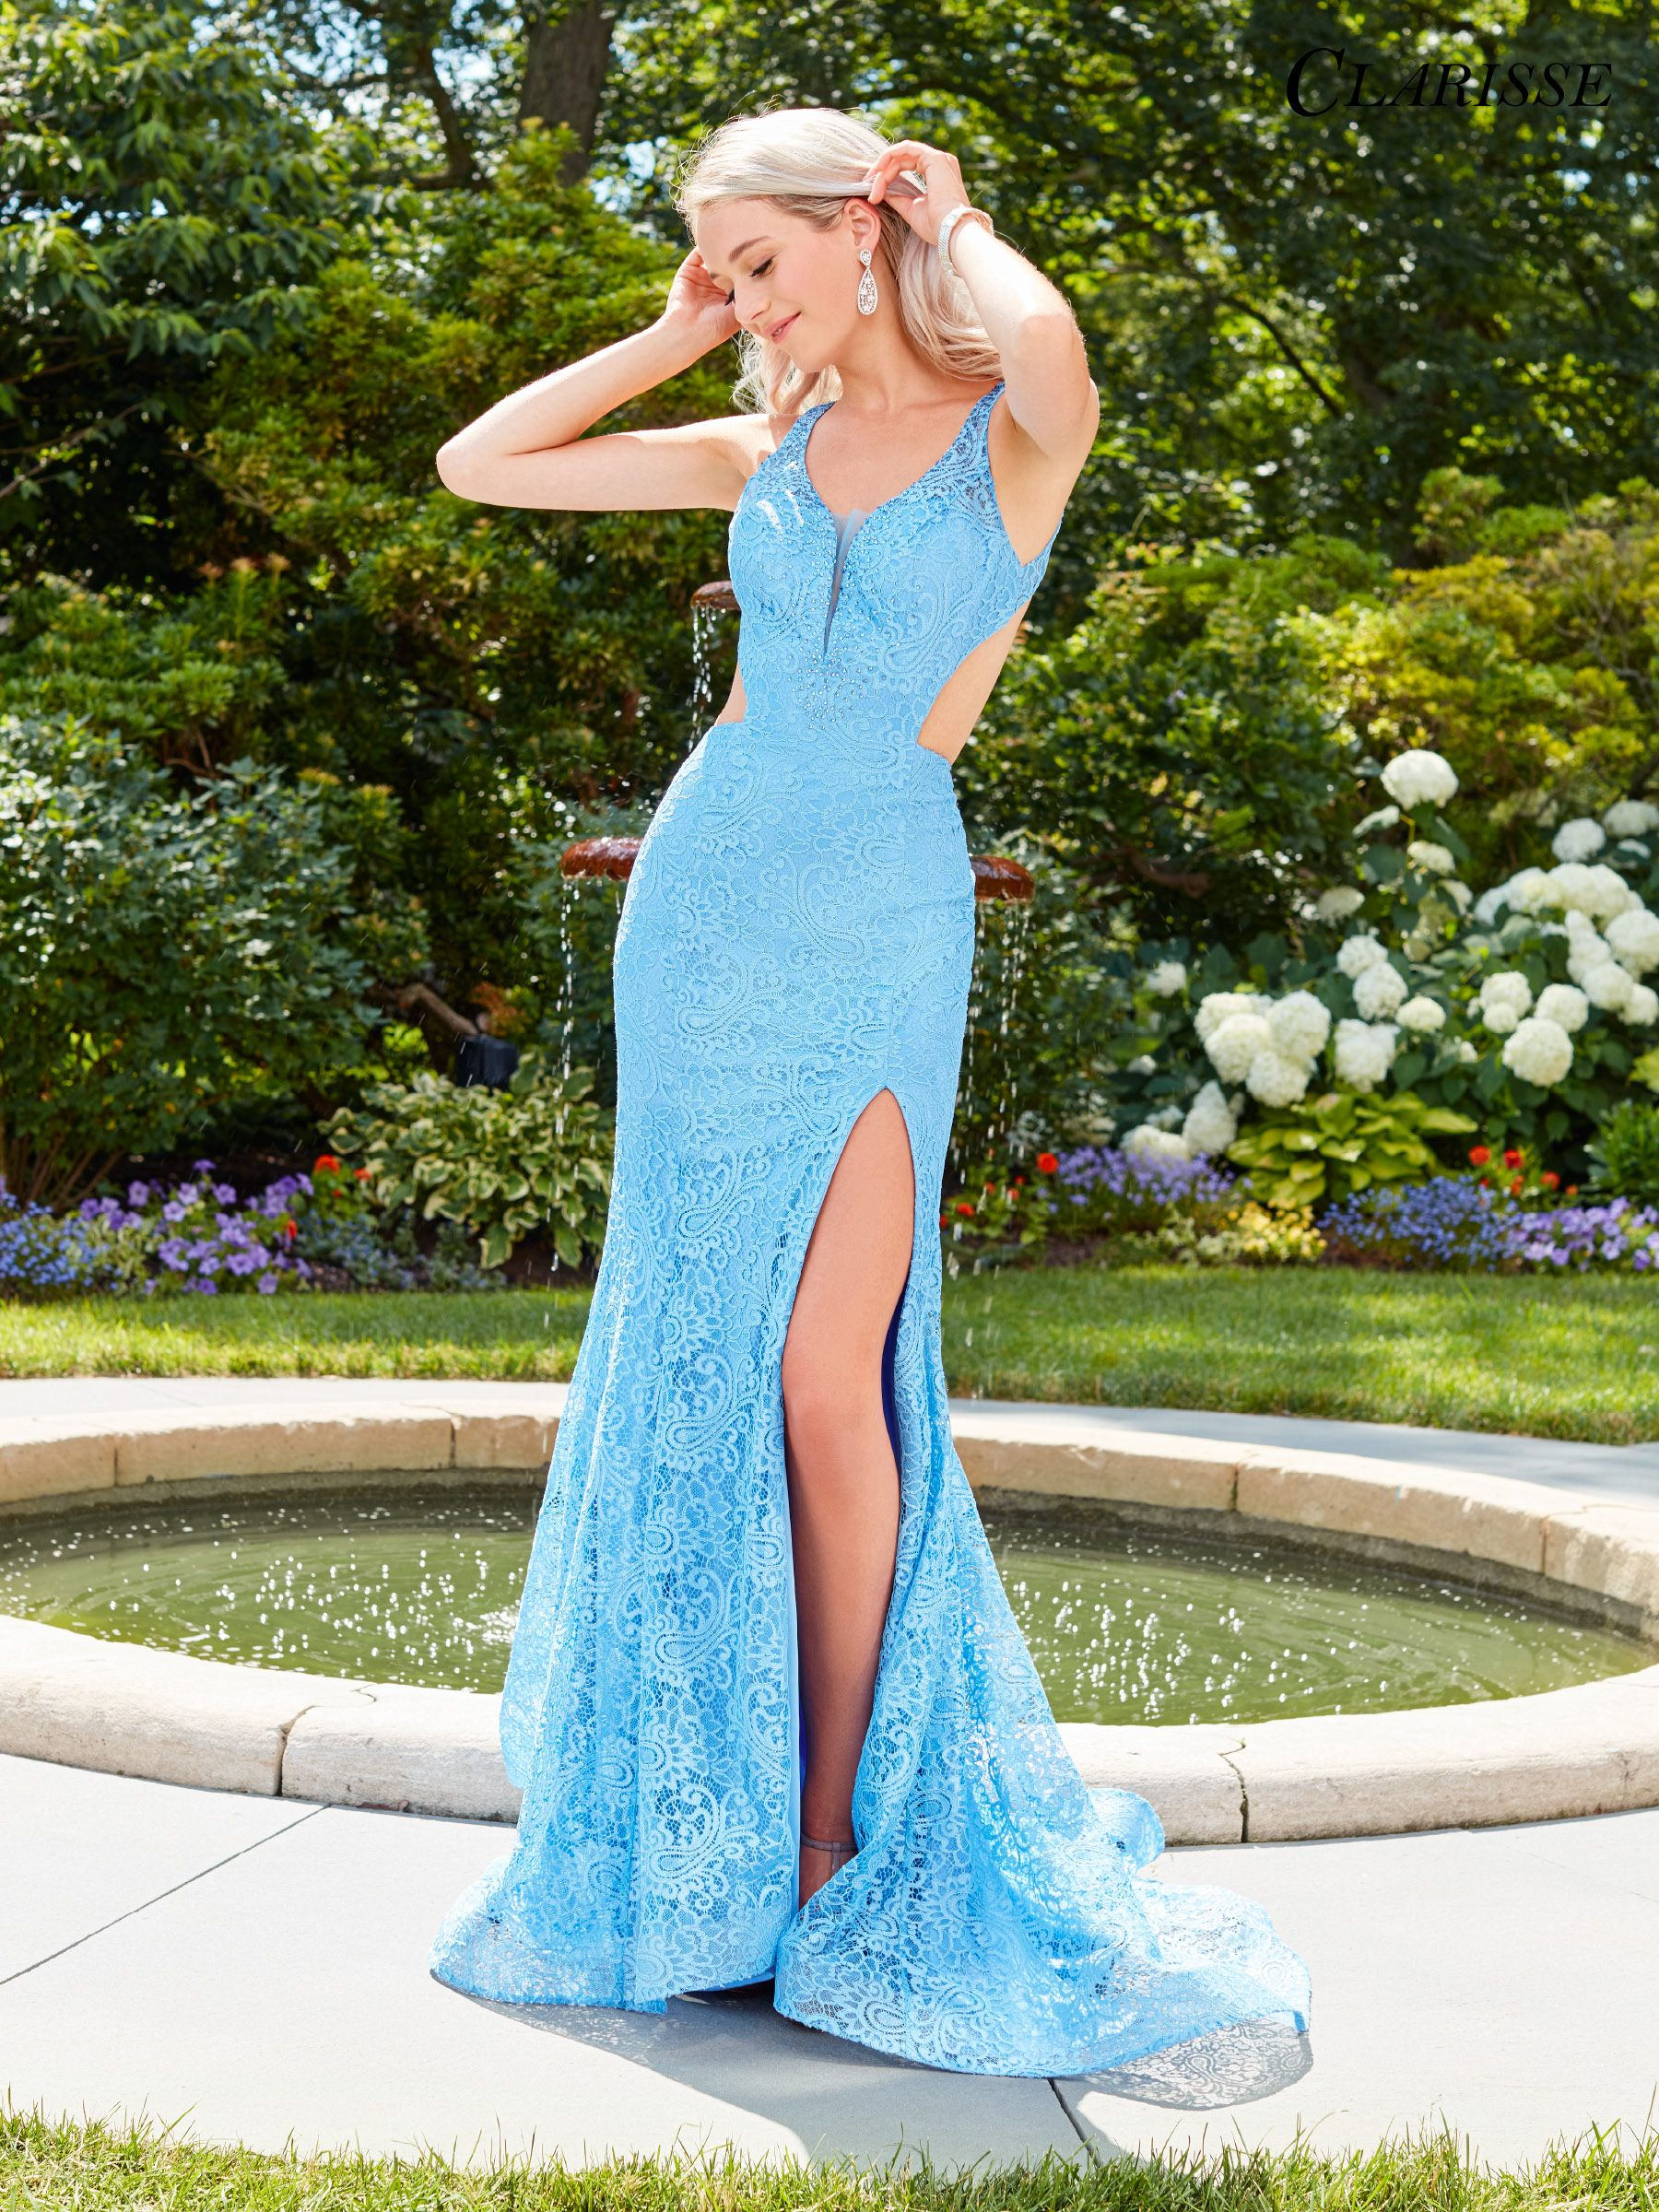 Pin by Kathy Skwarlo on Party | Pinterest | Elegant gown, Prom and ...